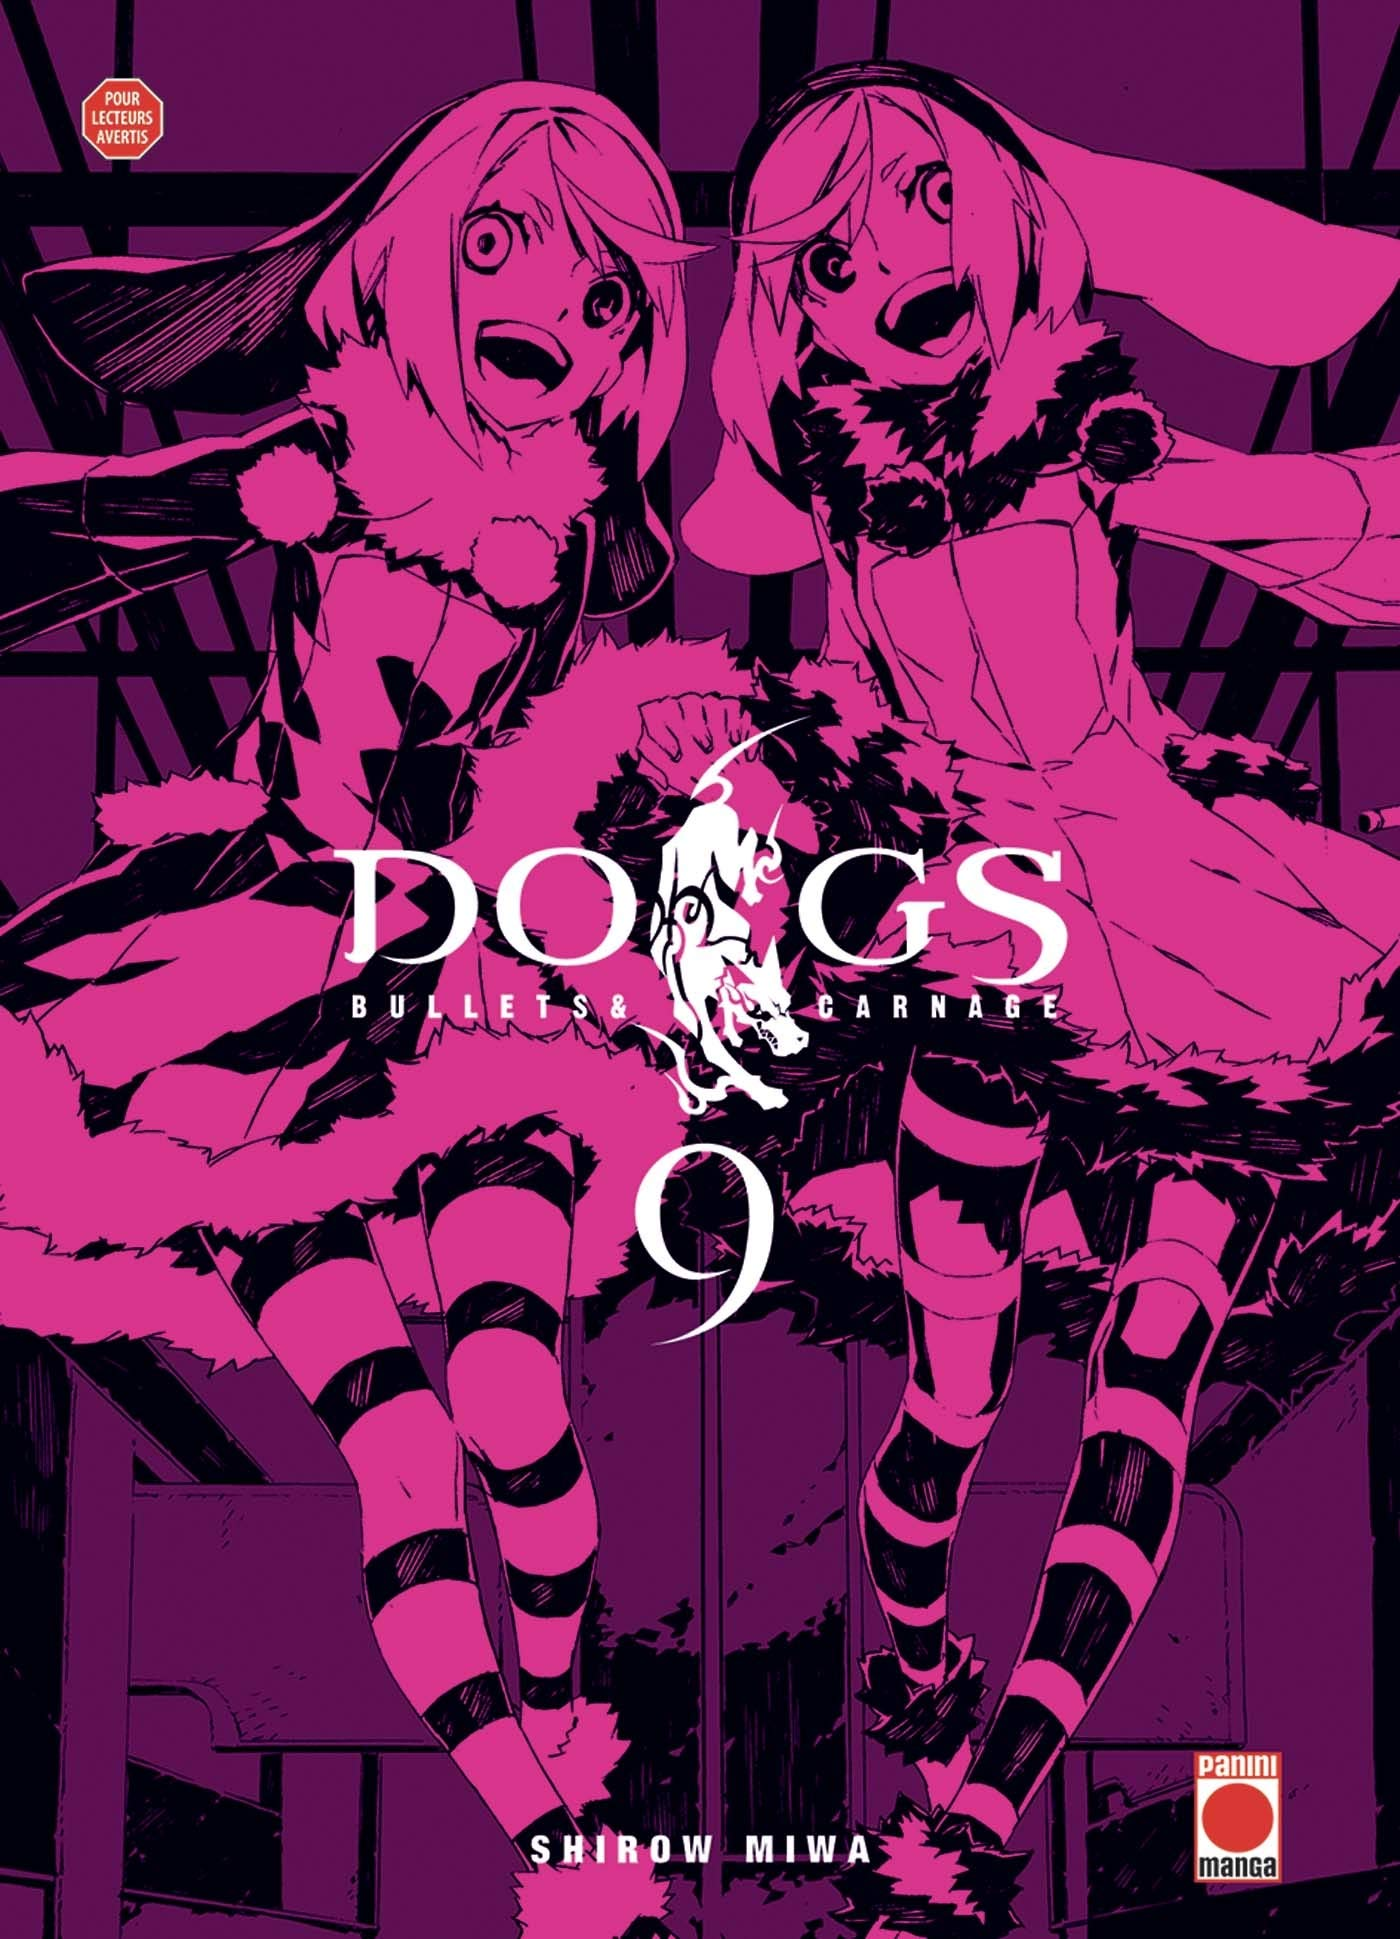 Dogs - Bullets and Carnage 9